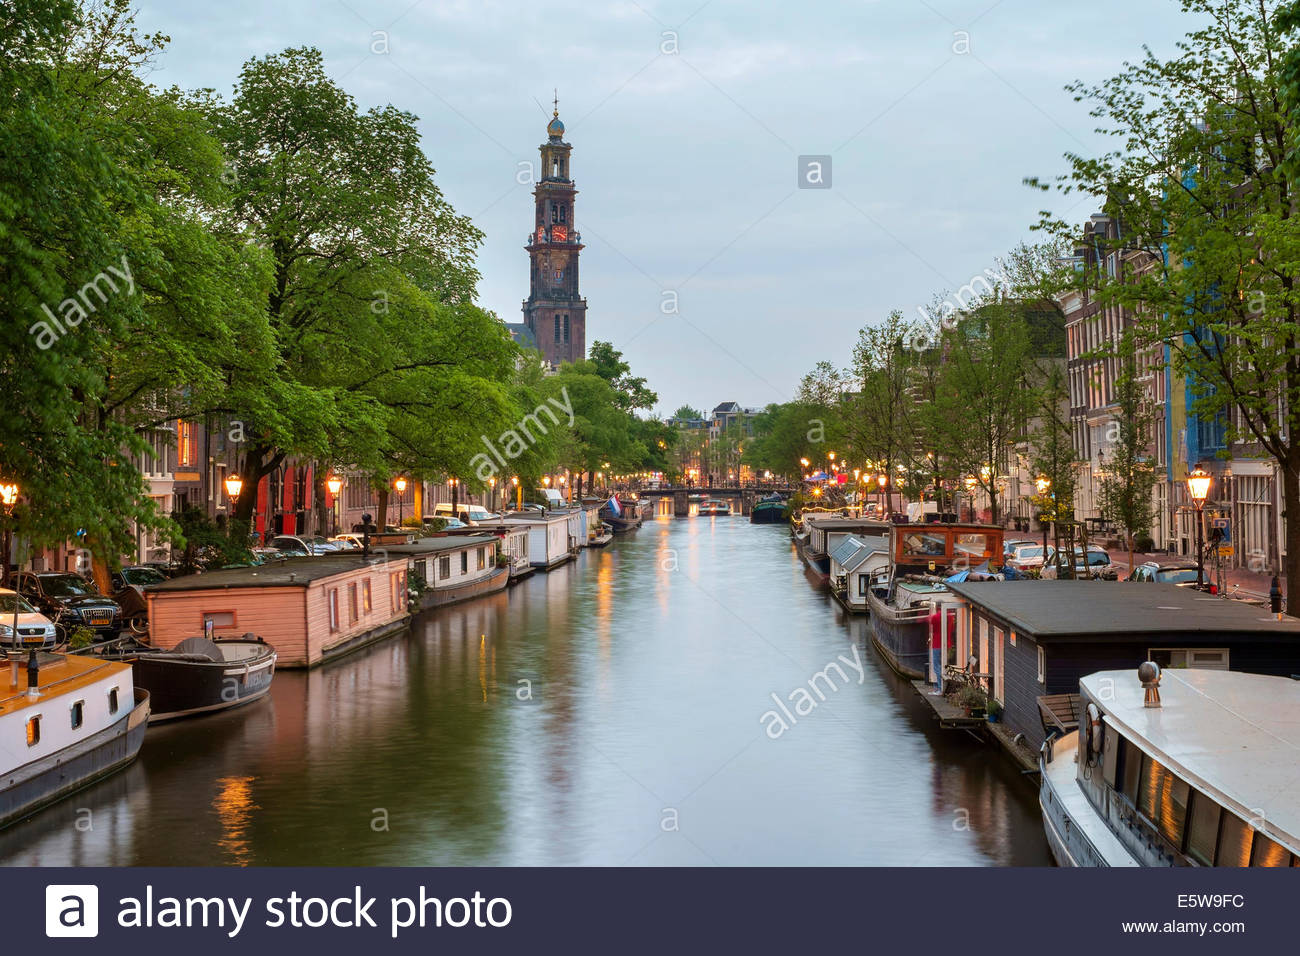 Prinsengracht canal at dusk with Westerkerk in distance, Amsterdam, North Holland, Netherlands - Stock Image